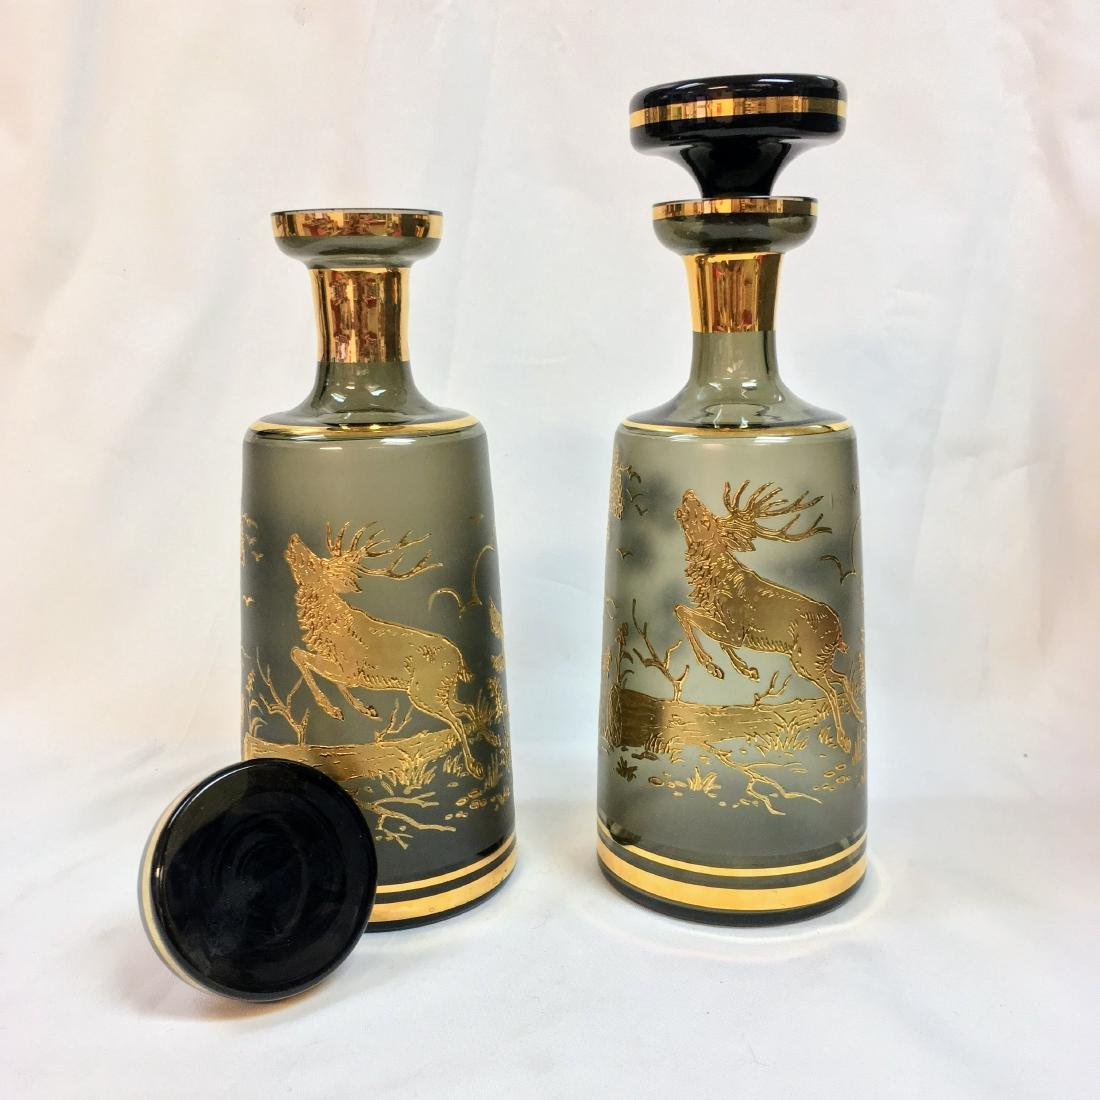 Set of 2 Bohemian crystal Decanters, Mid Century - 2